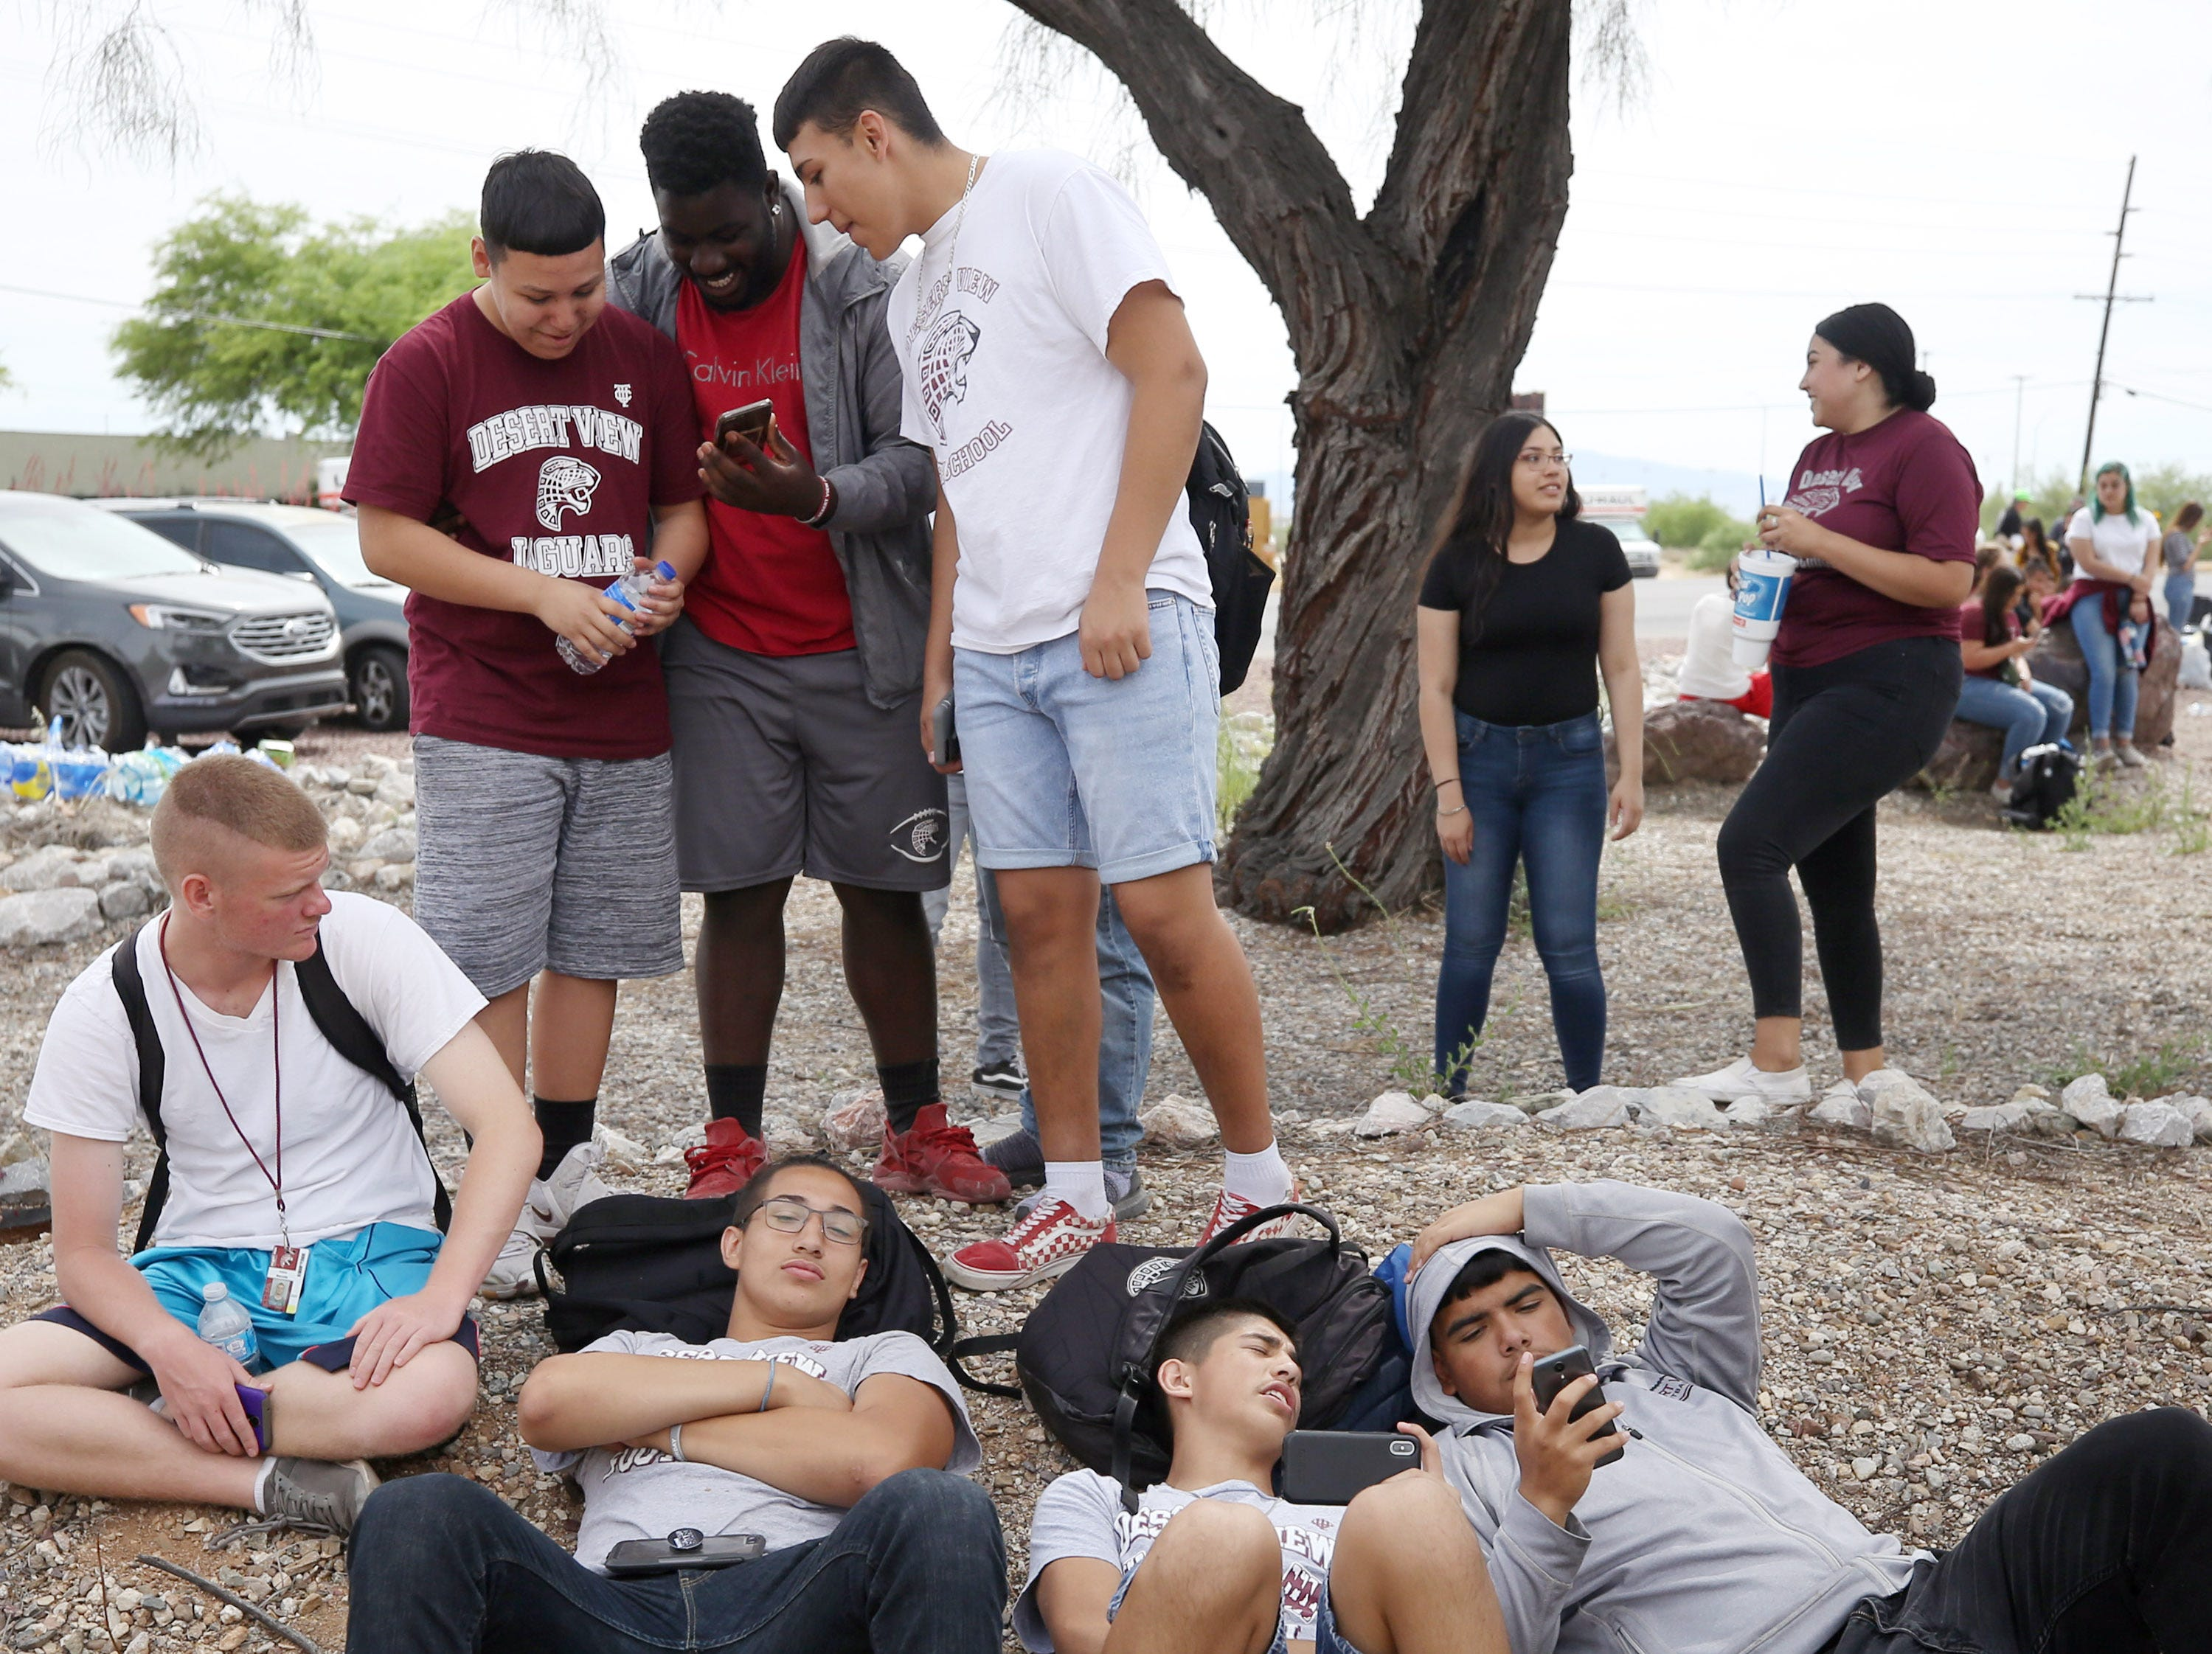 After marching from Desert View High School to the Pima County Sheriff's Department on May 6th, 2019 students take a rest.